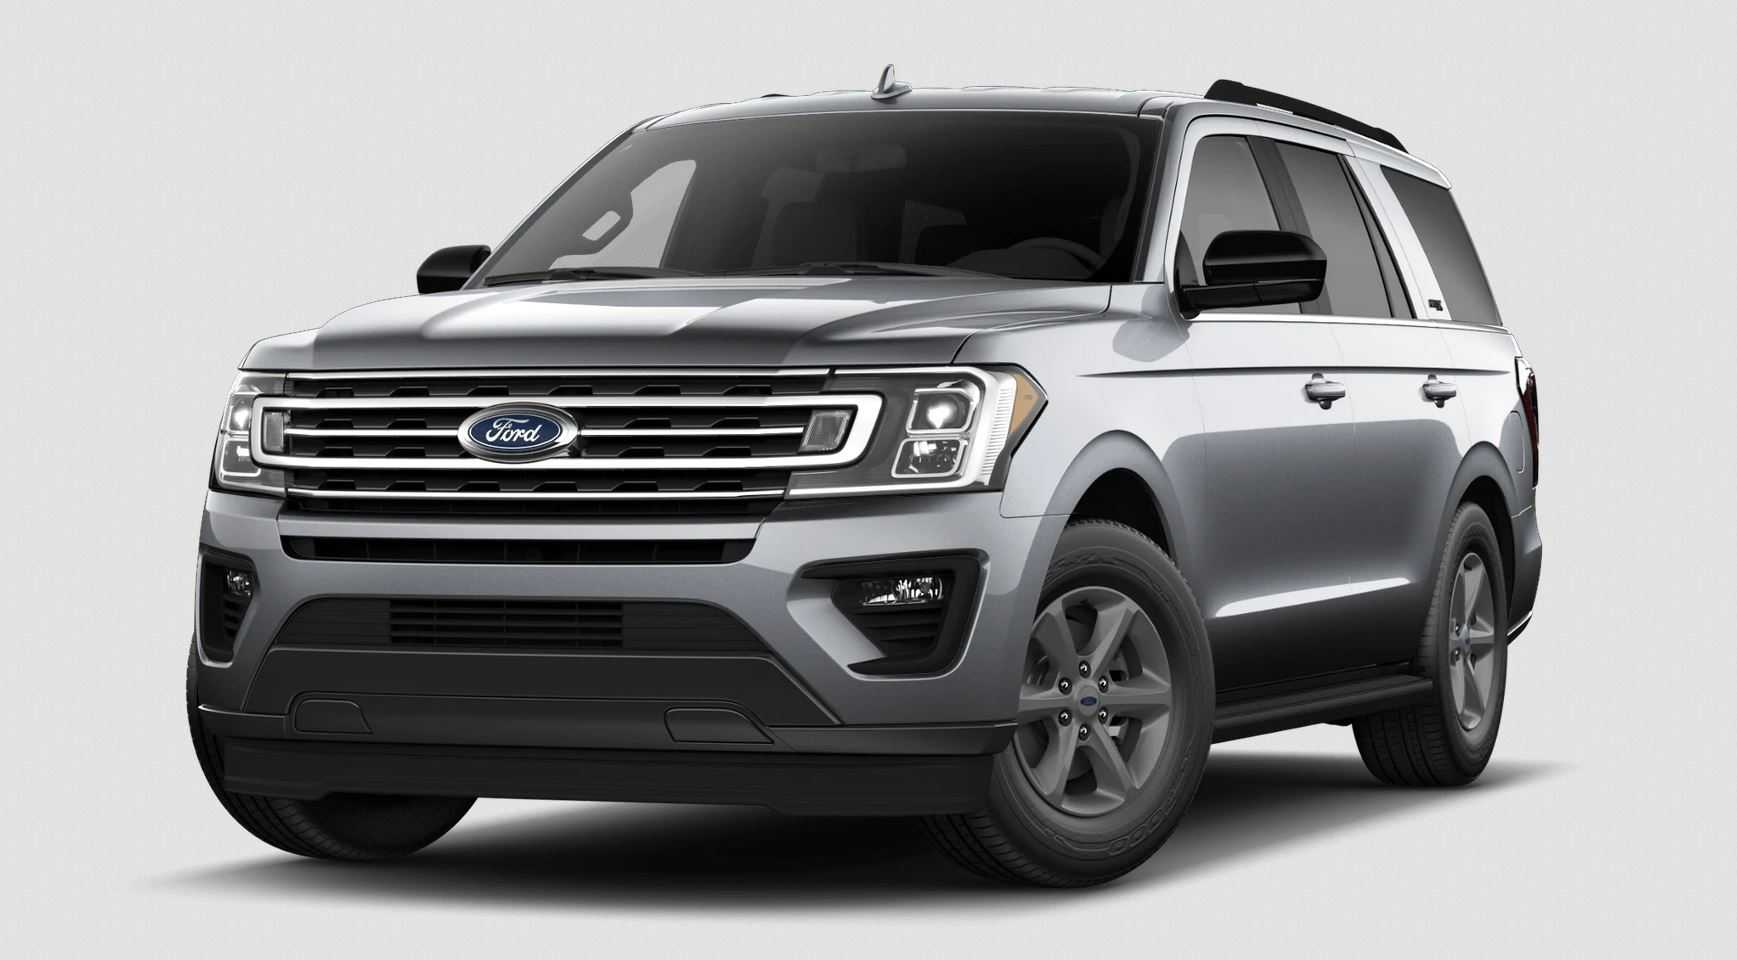 2021 Ford Expedition XL STX Features and Pricing Revealed